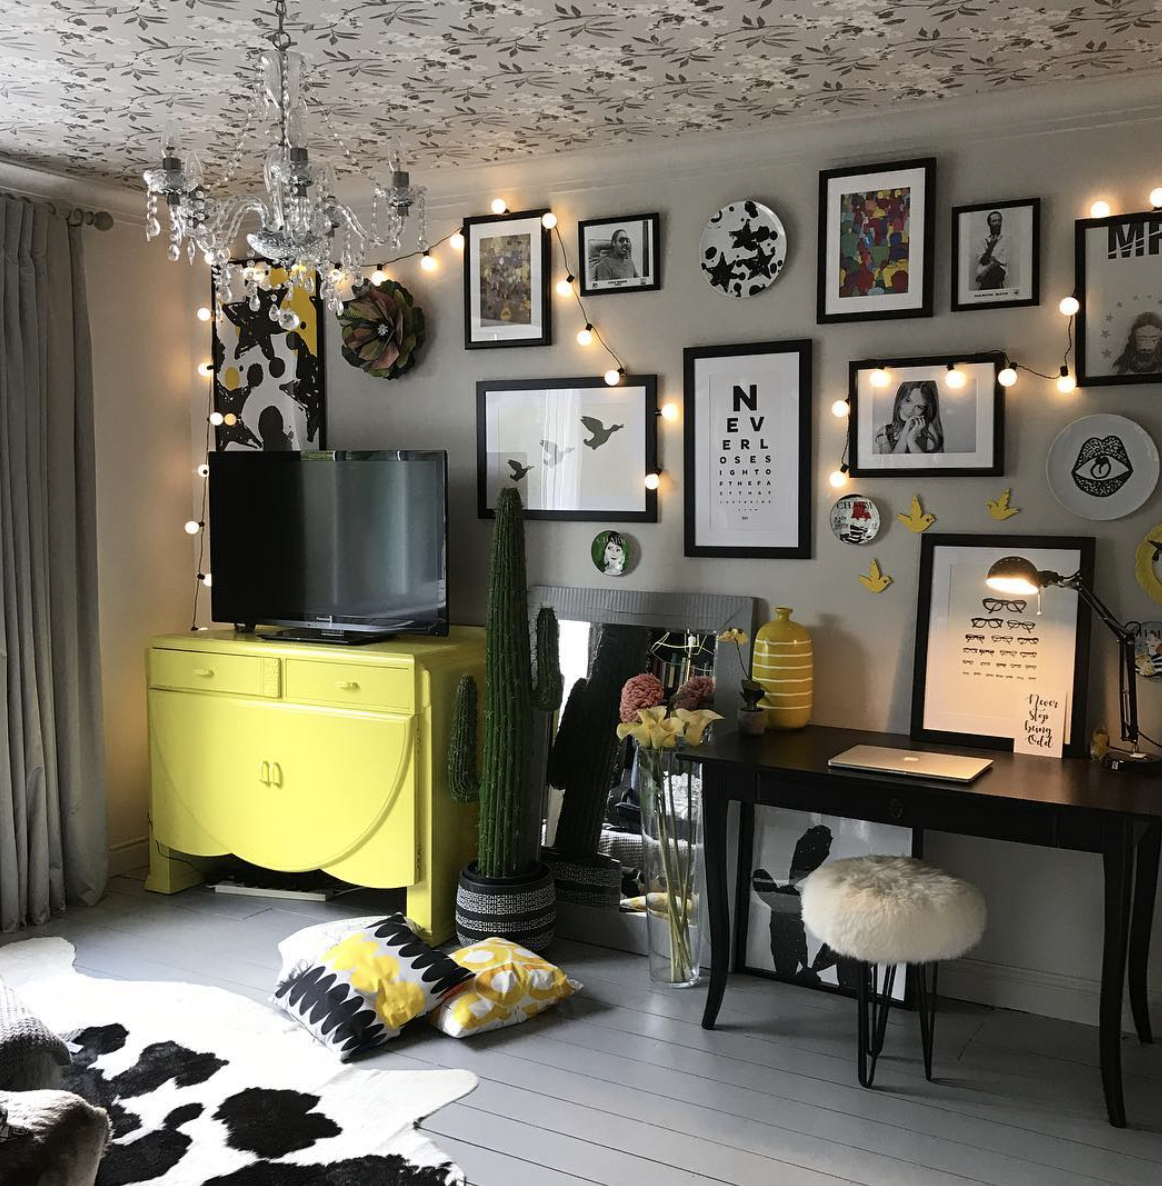 Julia at  Suburban Salon  has given her room a yellow colour pop with this upcycled cabinet. Plus her use of wallpaper on the ceiling gives the whole space an edge.